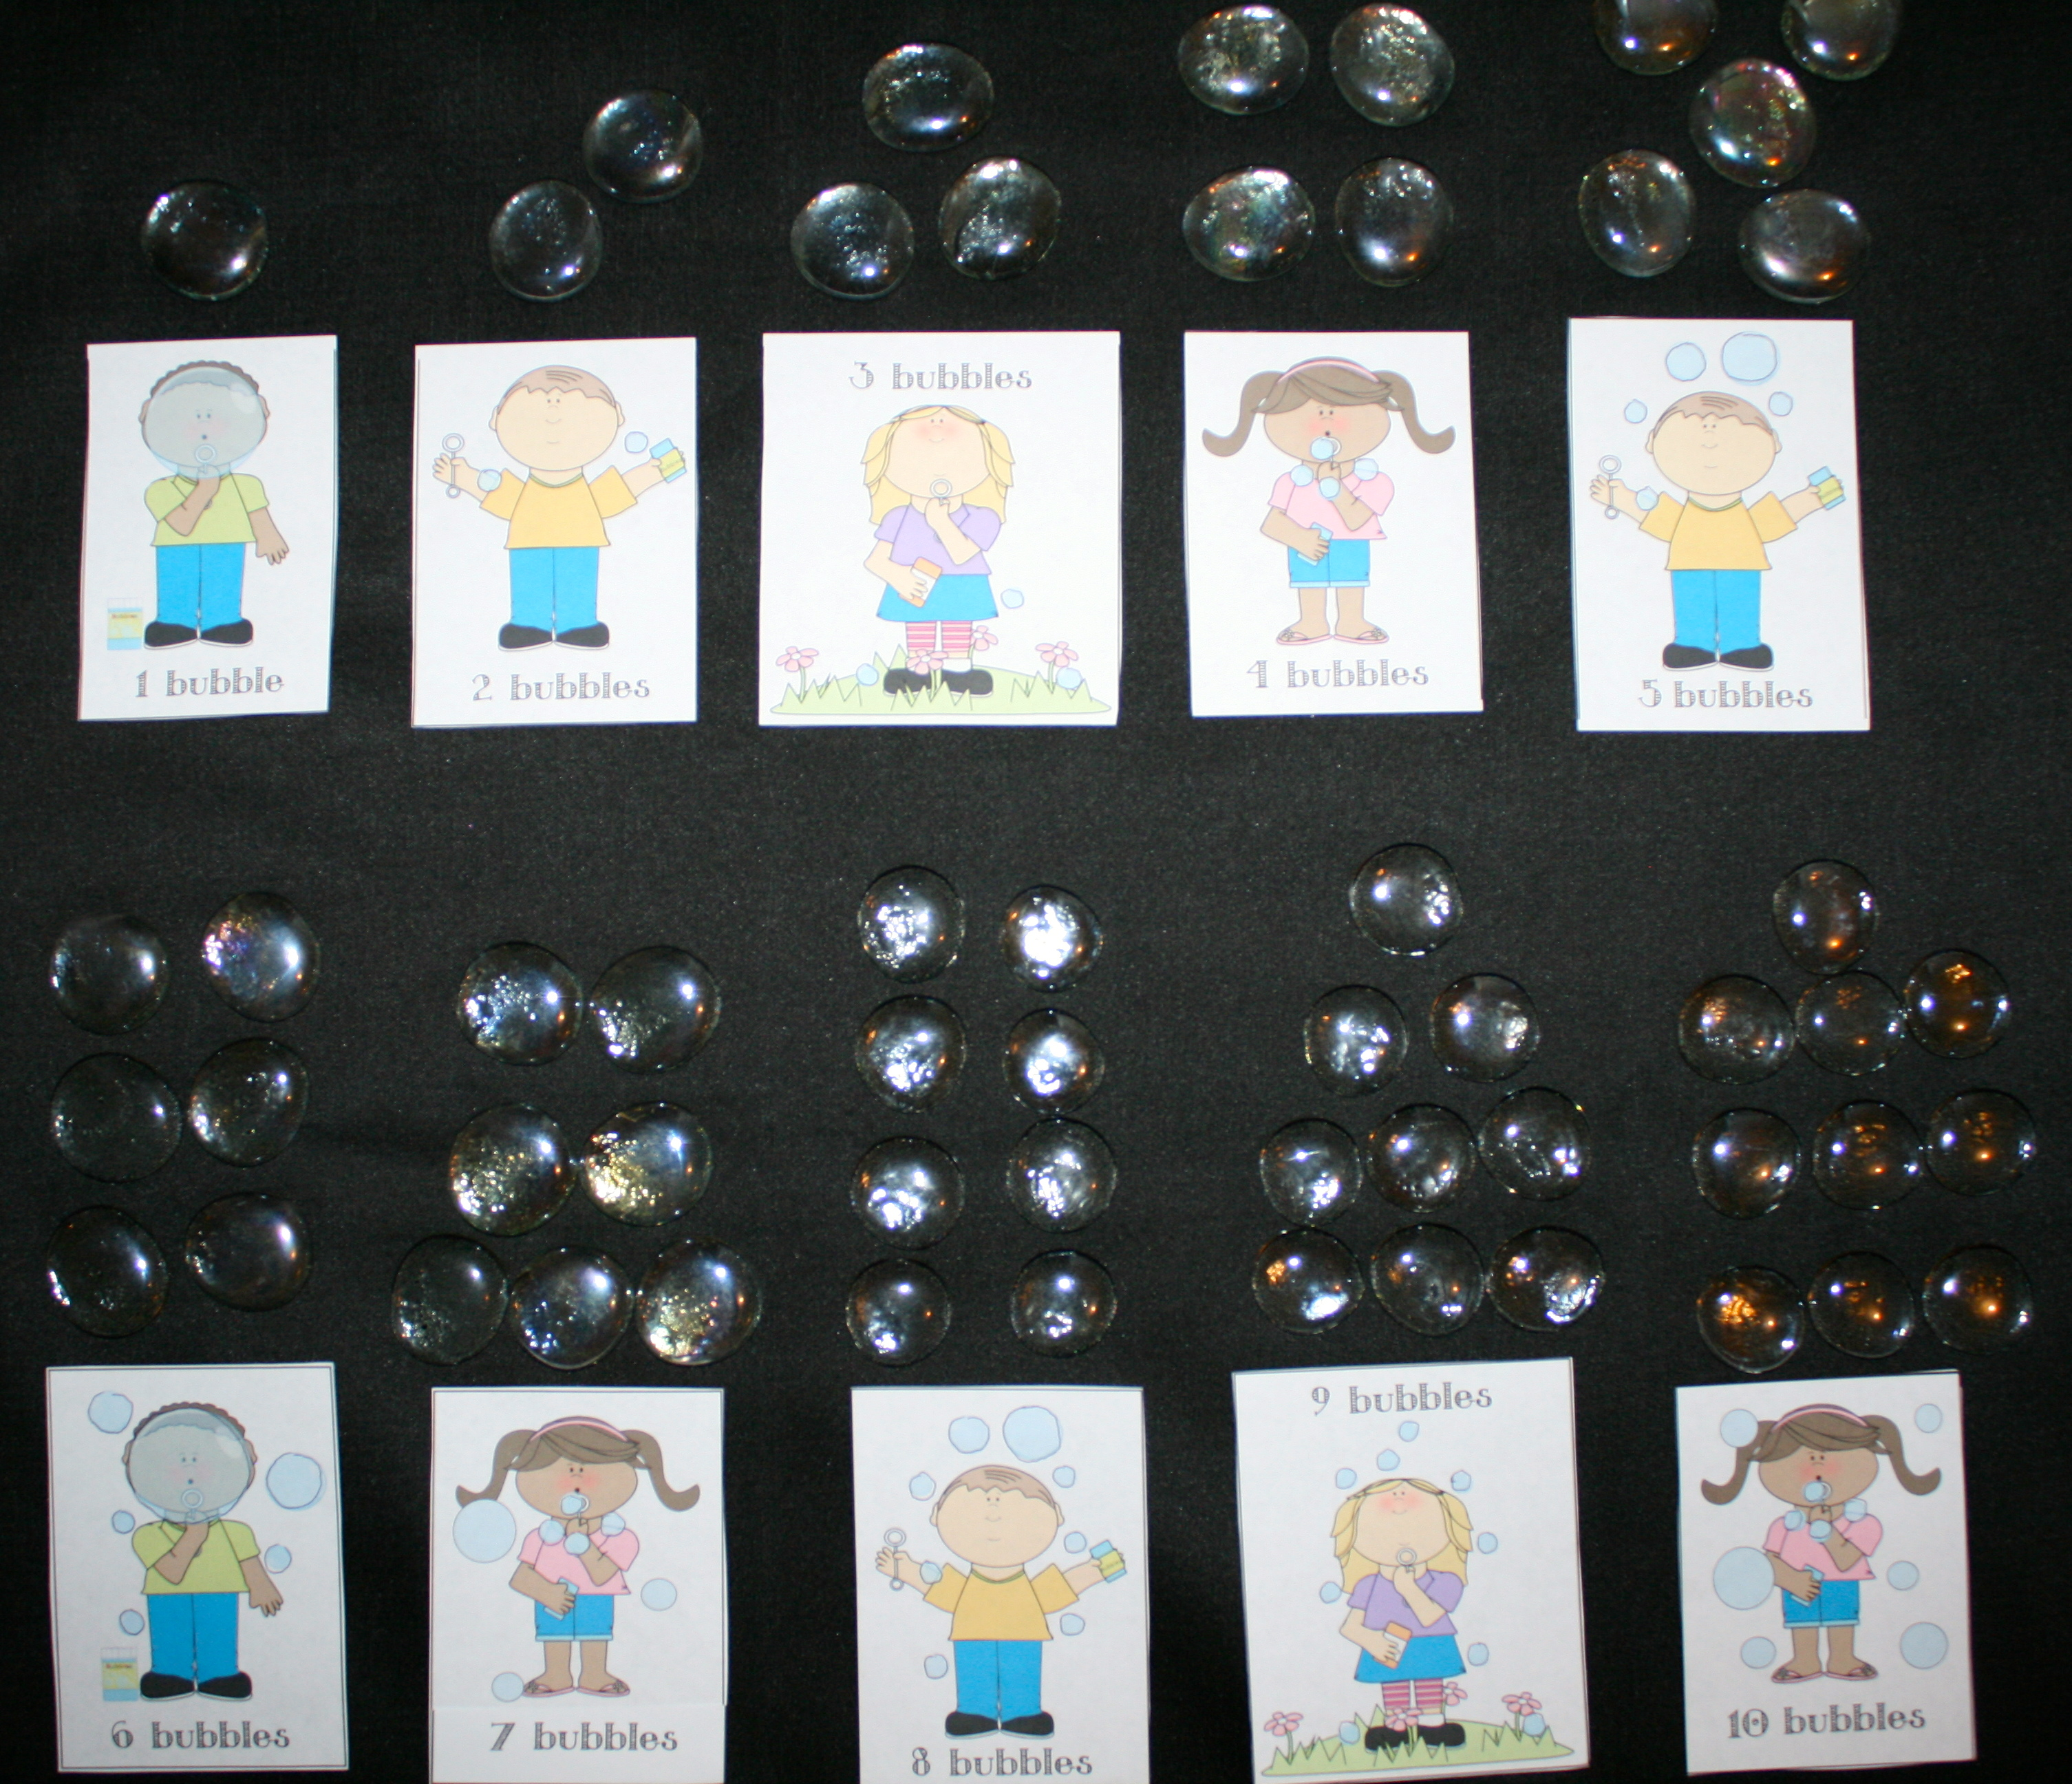 bookmarks, 1st day of school ideas, ideas for the first day of school, gifts for students, 1st day treat ideas, treat bag alternatives, treat bags, bubble activities, bubble lessons, common core bubbles, free common core lessons for kindergarten and first grade, CCSS math for kindergarten, back to school ideas, back to school activities, counting activities, one-to-one correspondence activities, free bookmarks for back to school, bookmarks for back to school, math games, math centers, math games for kindergarten, math centers for kindergarten, games for the 1st week of school, icebreakers